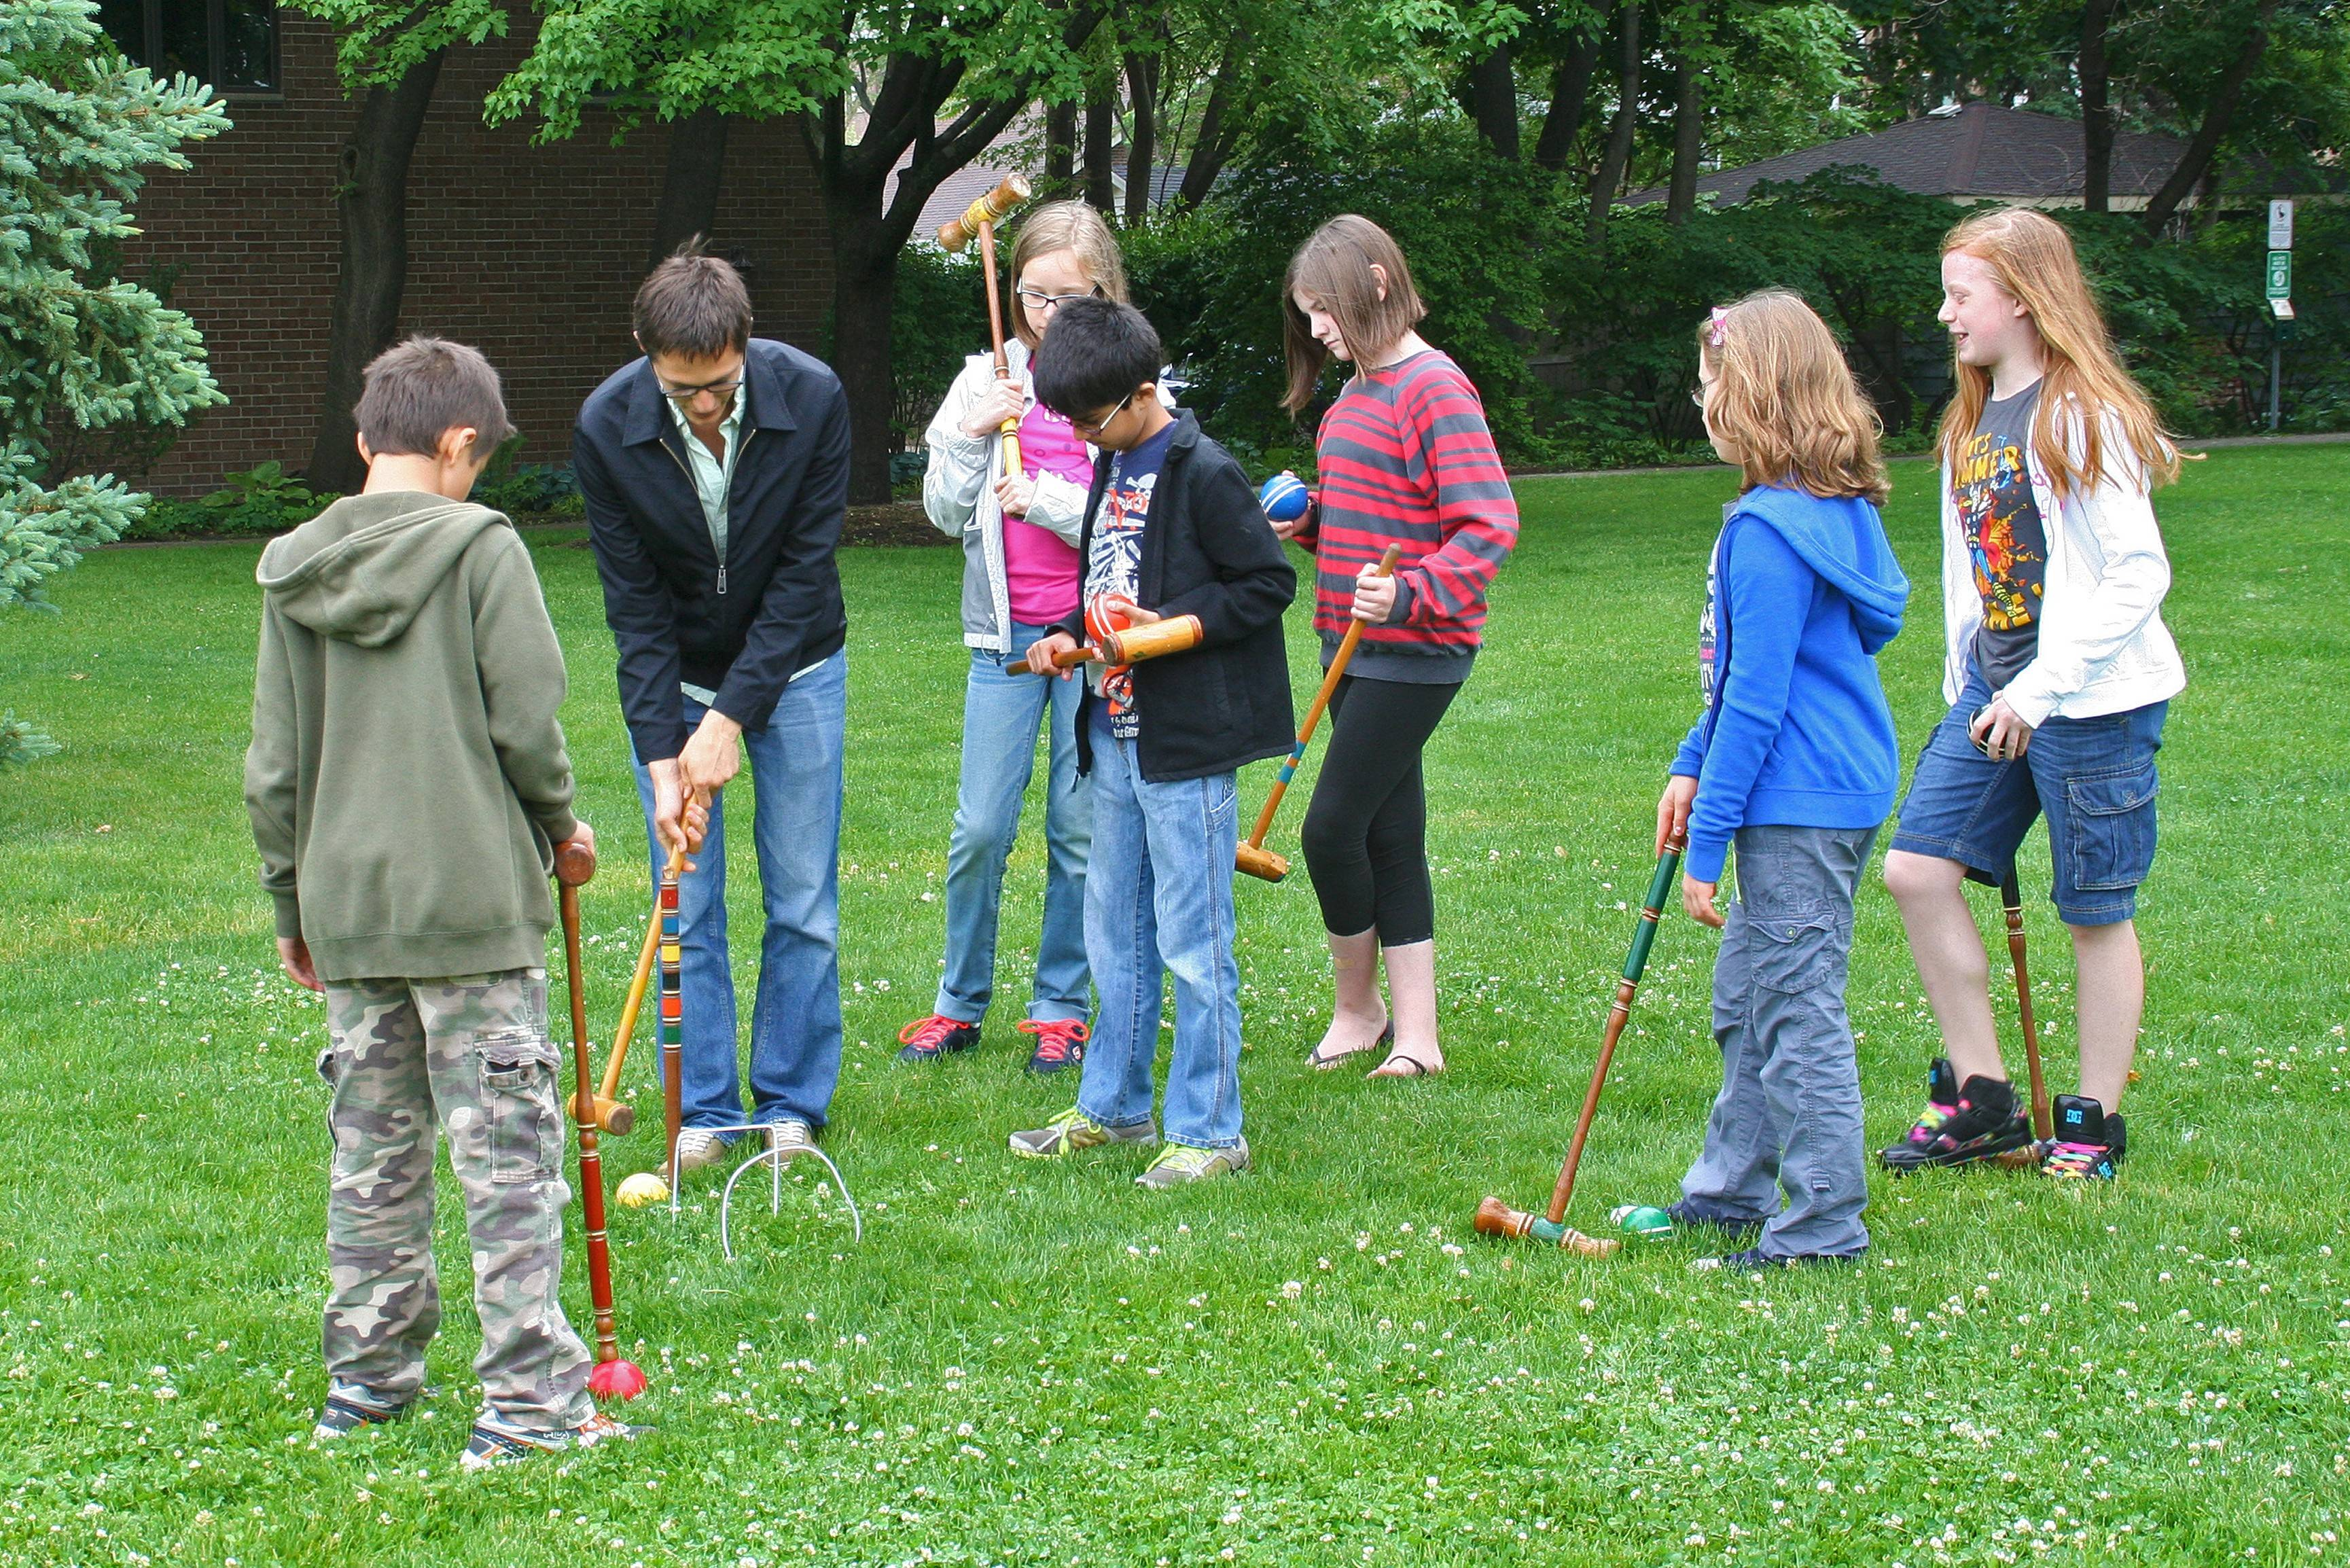 Philip Mohr, curator for the Des Plaines History Center teaches the CHIPs students how to play croquet in Central Park.